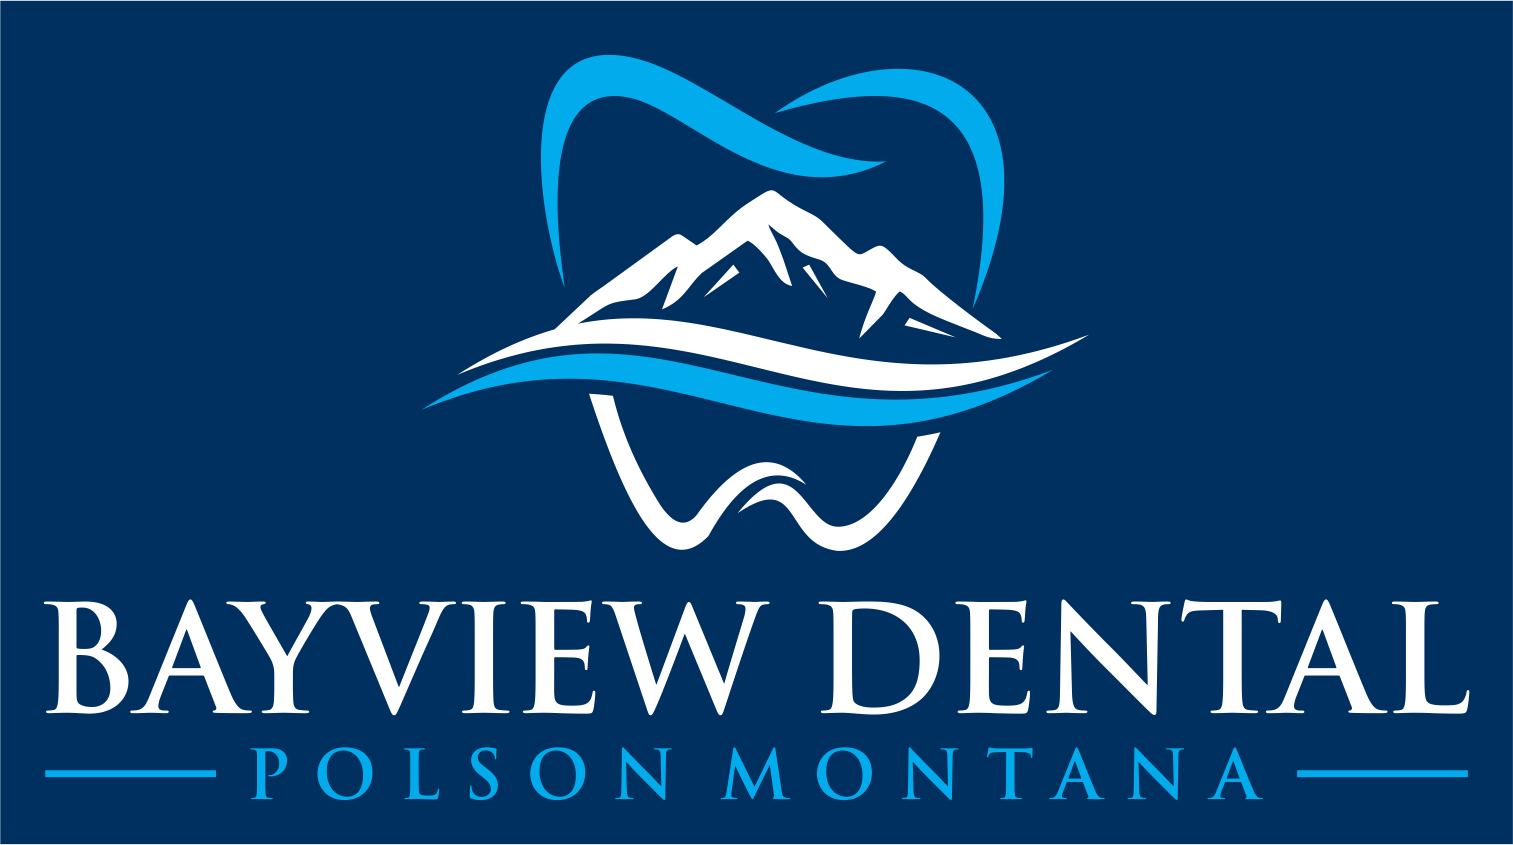 Come Enjoy the Difference a Great Dentist Can Make at Bayview Dental in Polson, MT